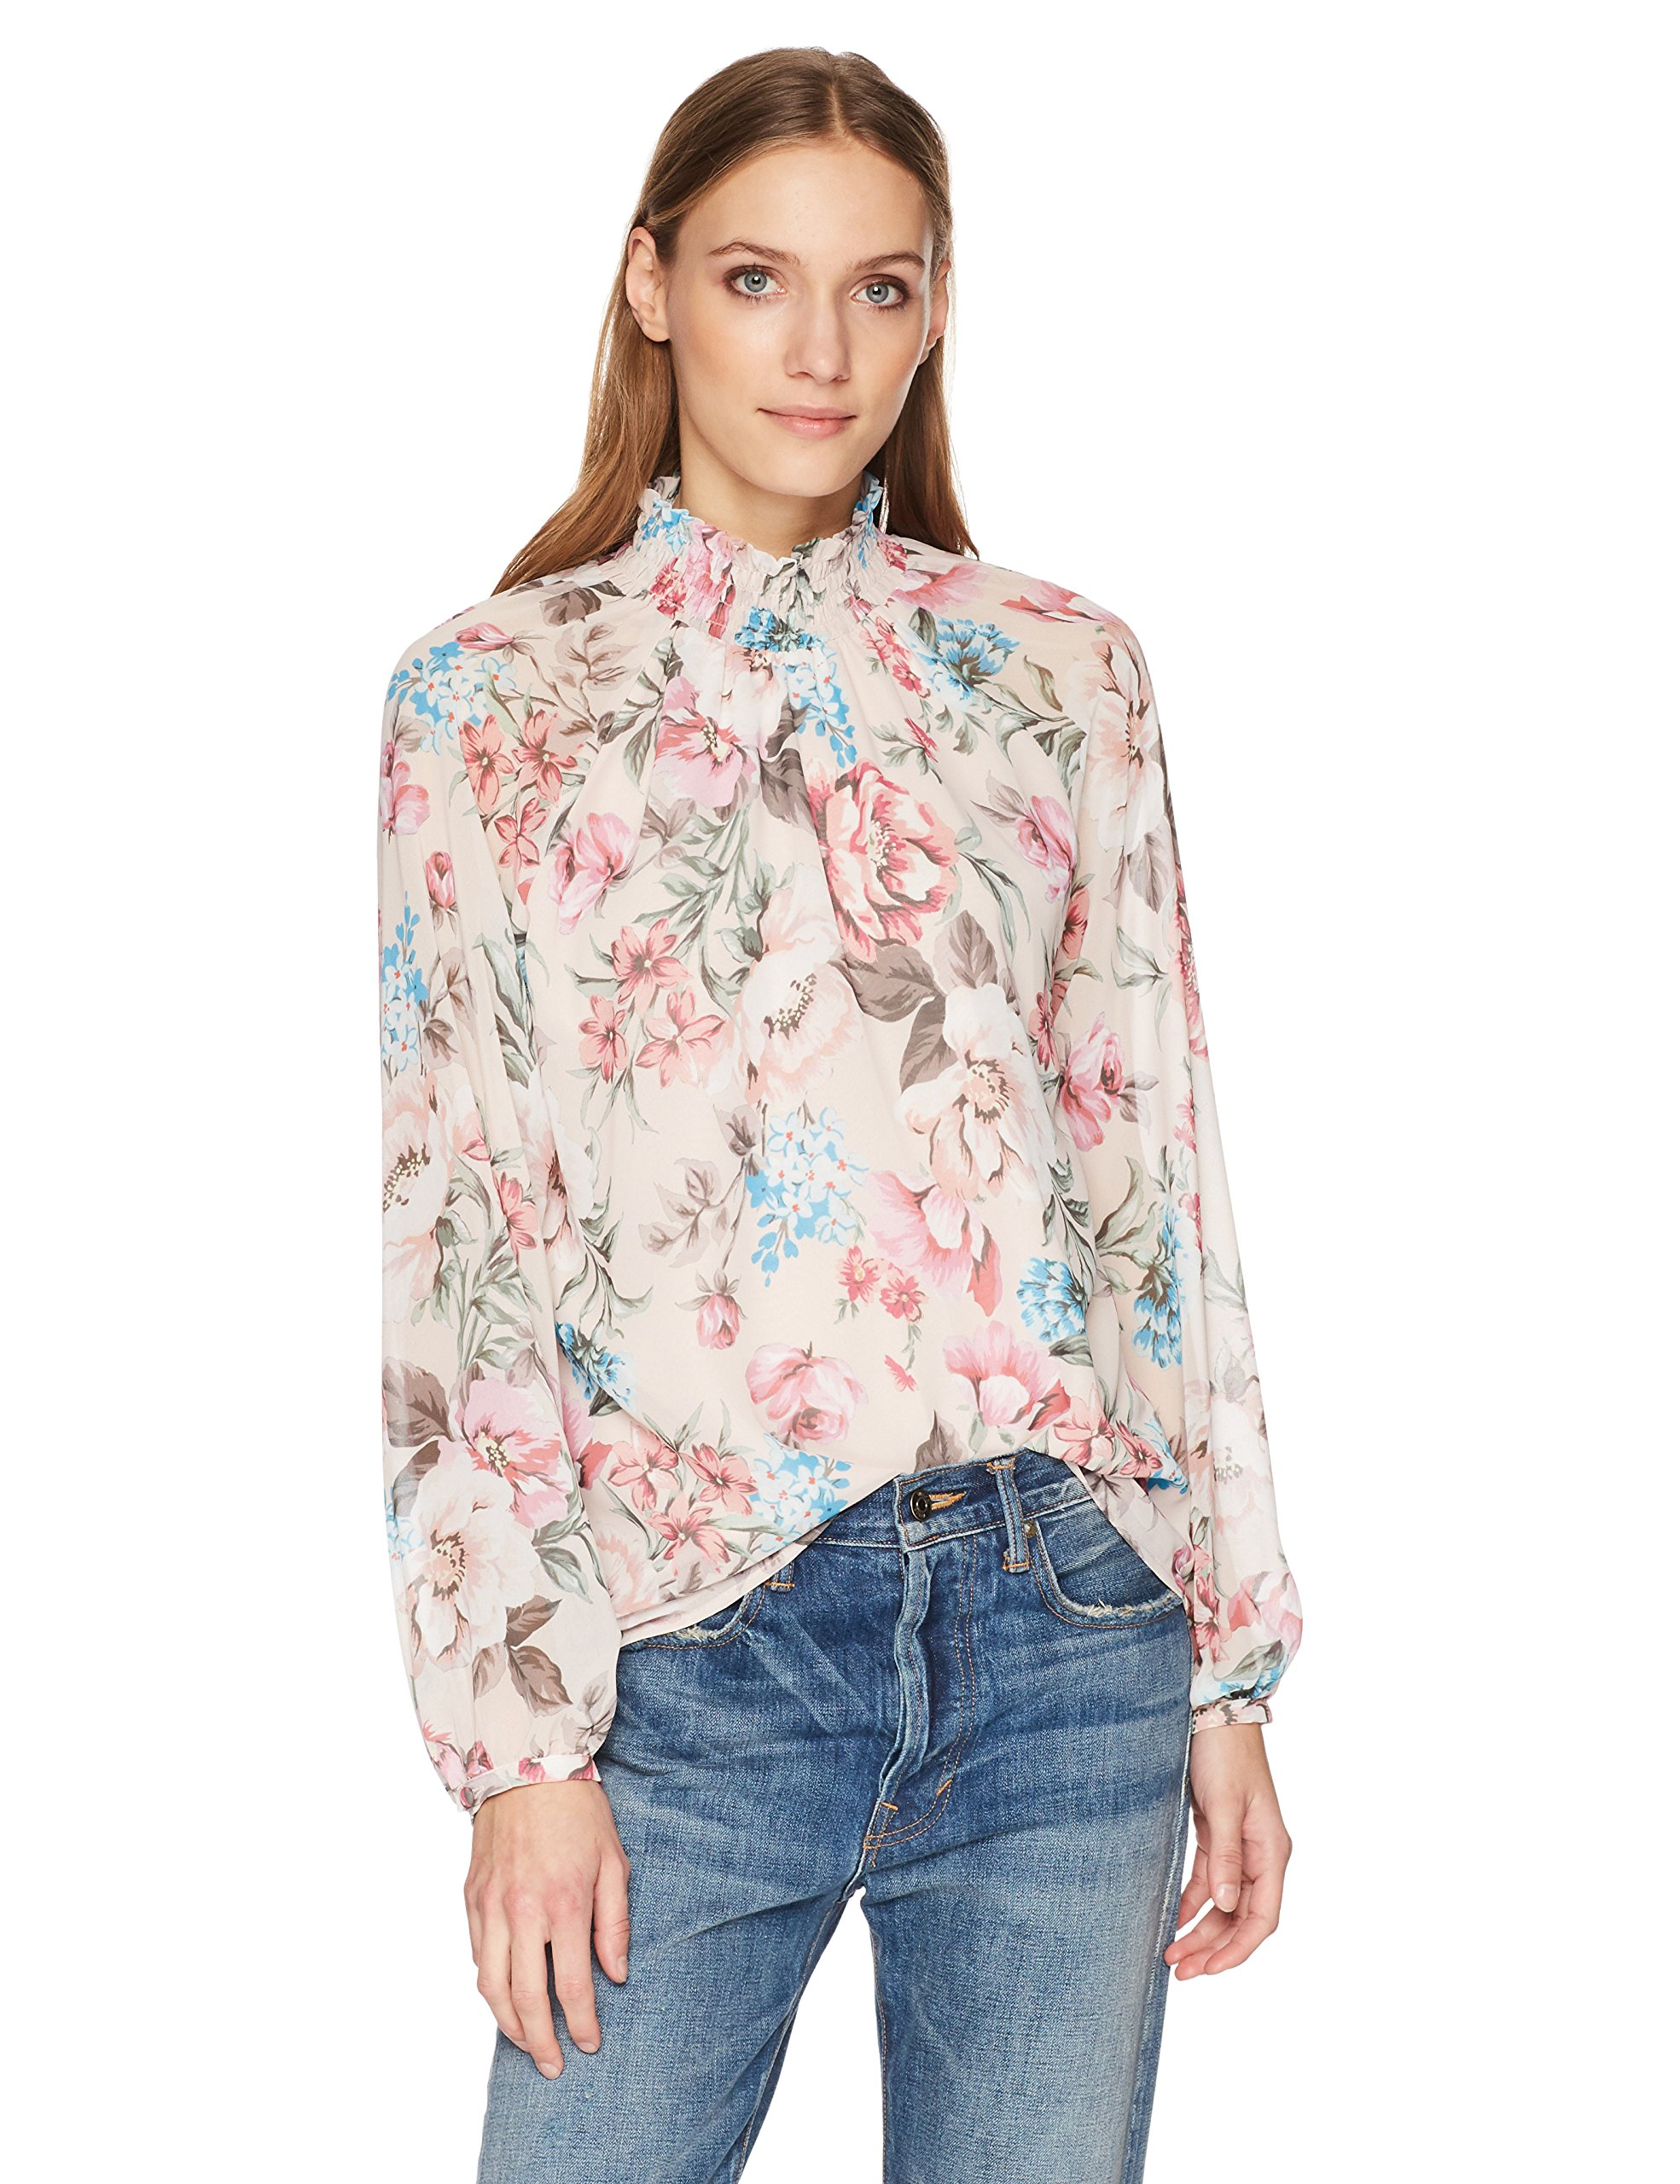 Yumi Kim Women's Lexington Ave Top, Full Of Love Blush, Small